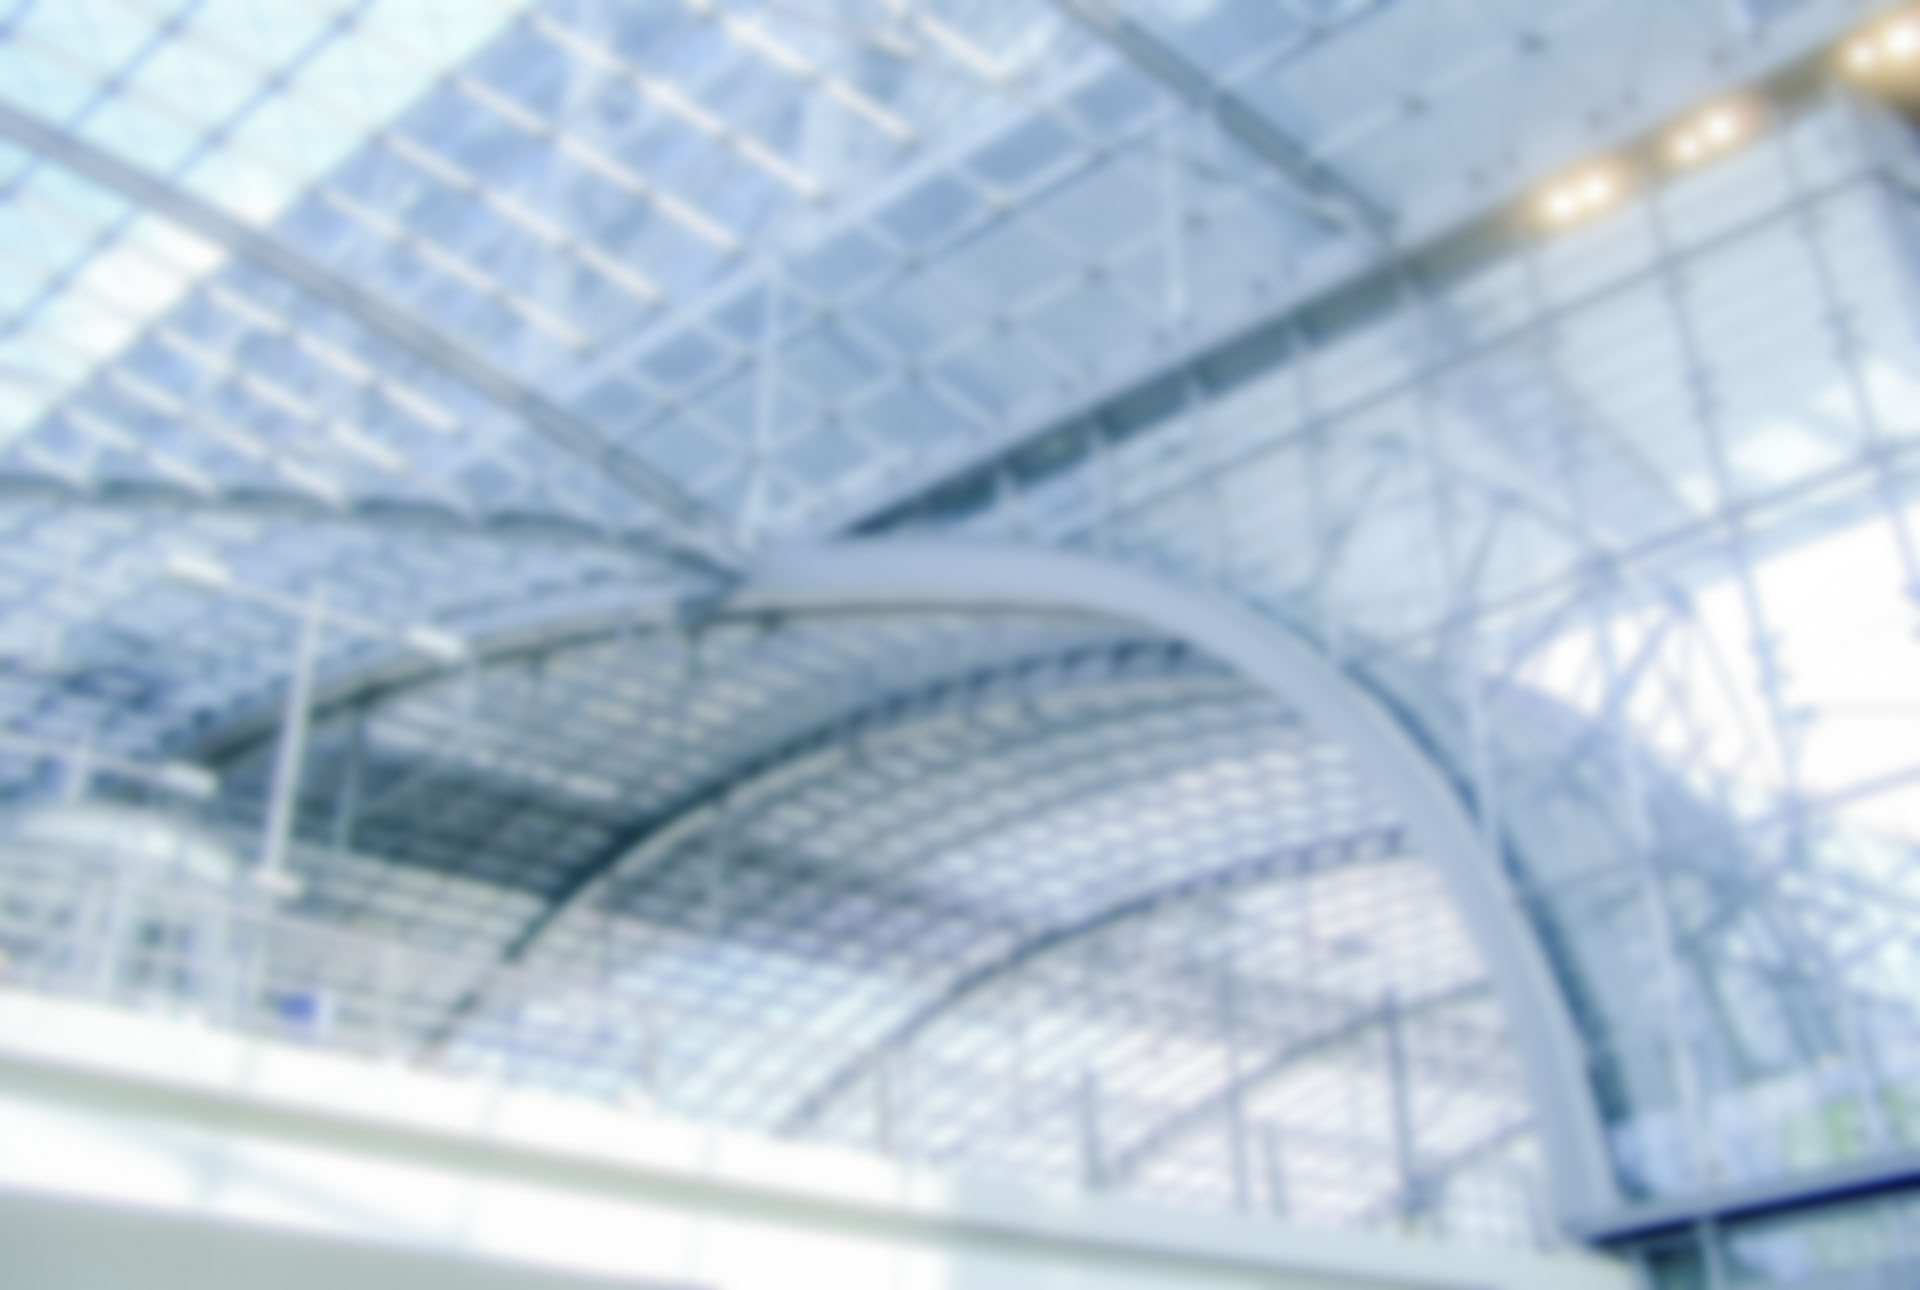 Defocused background with interiors of Berlin Main Train Station. Intentionally blurred post production